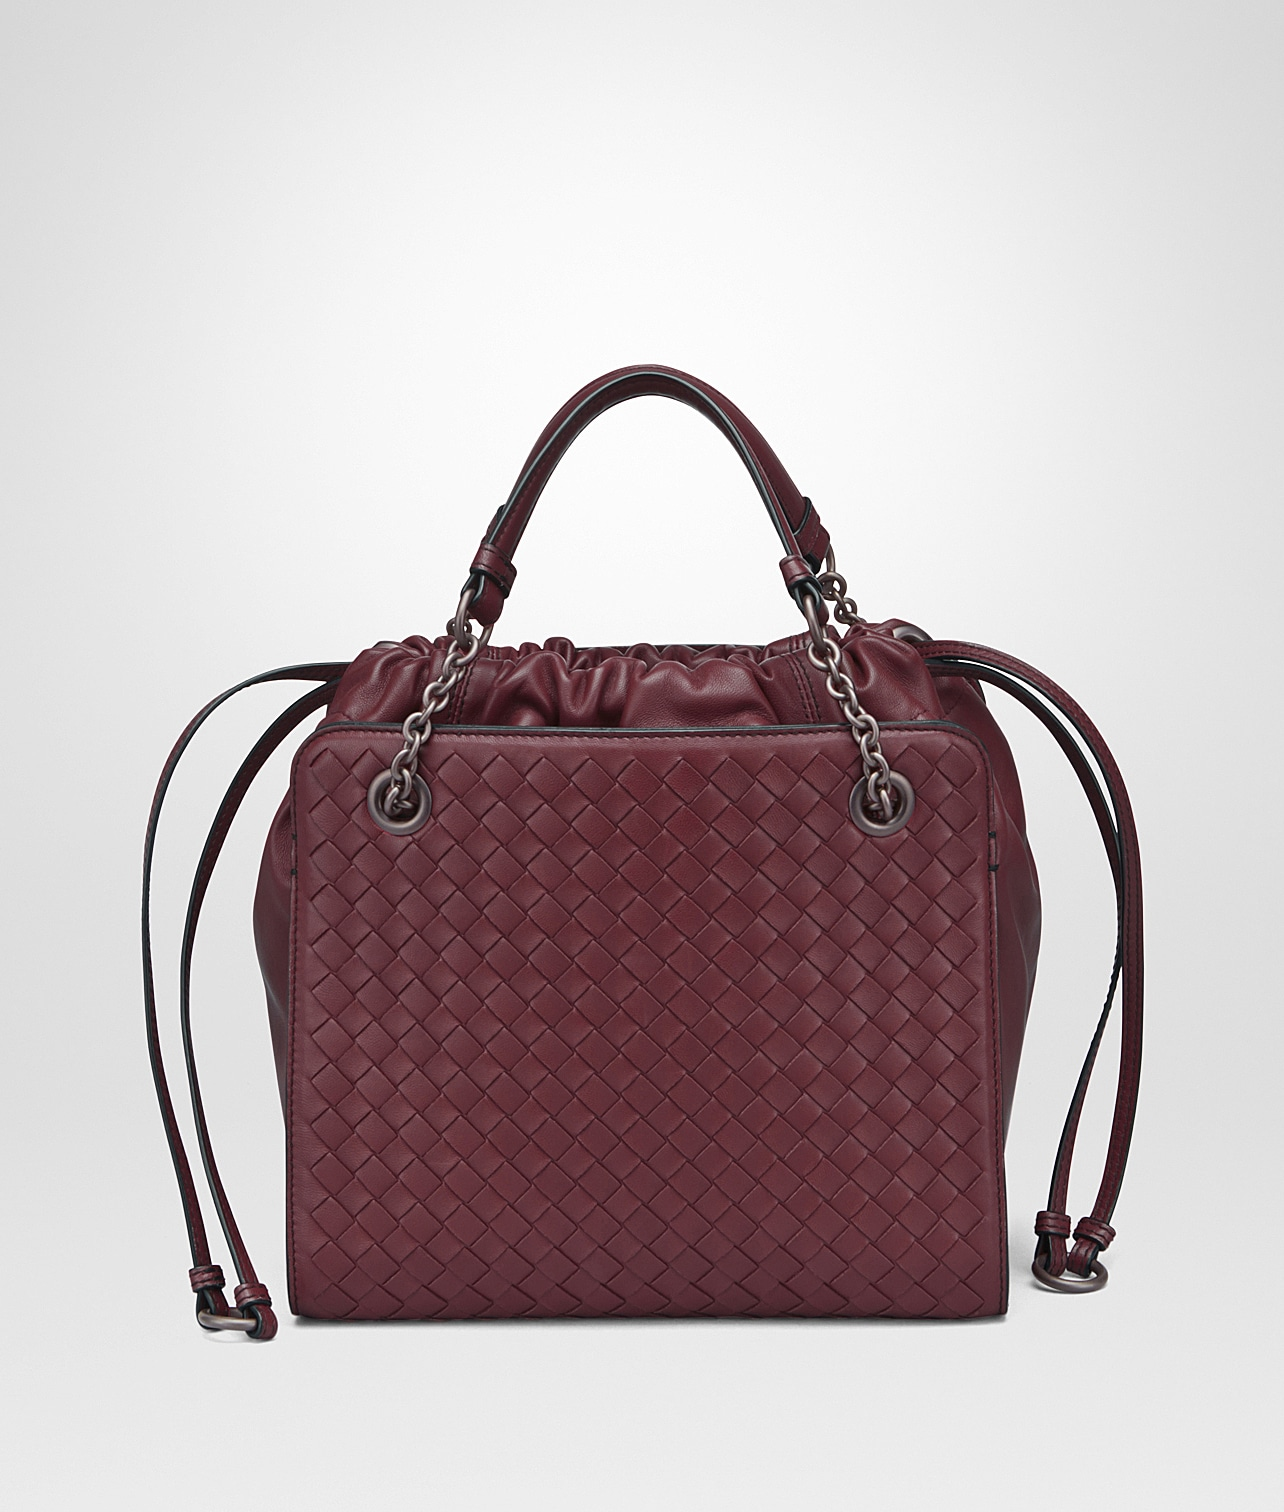 Bottega Veneta Barolo Nappa with Intrecciato Small Tote Bag a2e42da502d93